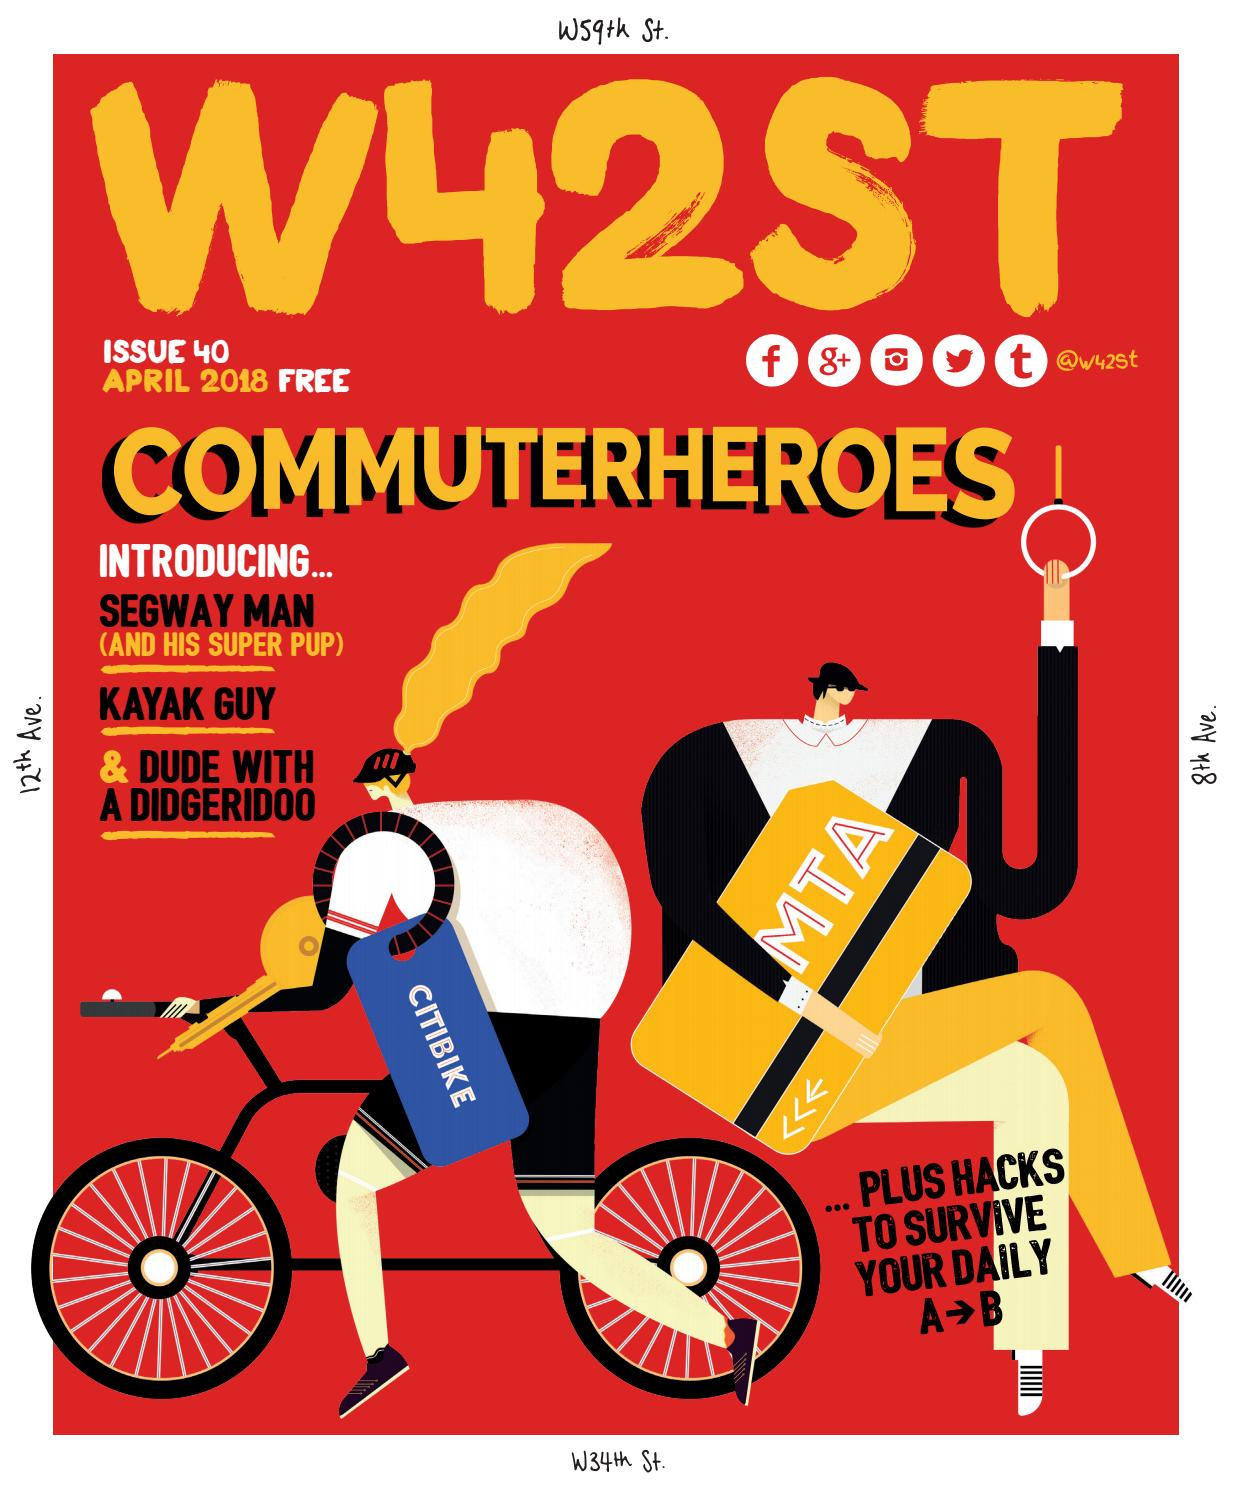 514474b9bc W42ST Issue 40 - The Commuter Issue by W42ST Magazine - issuu